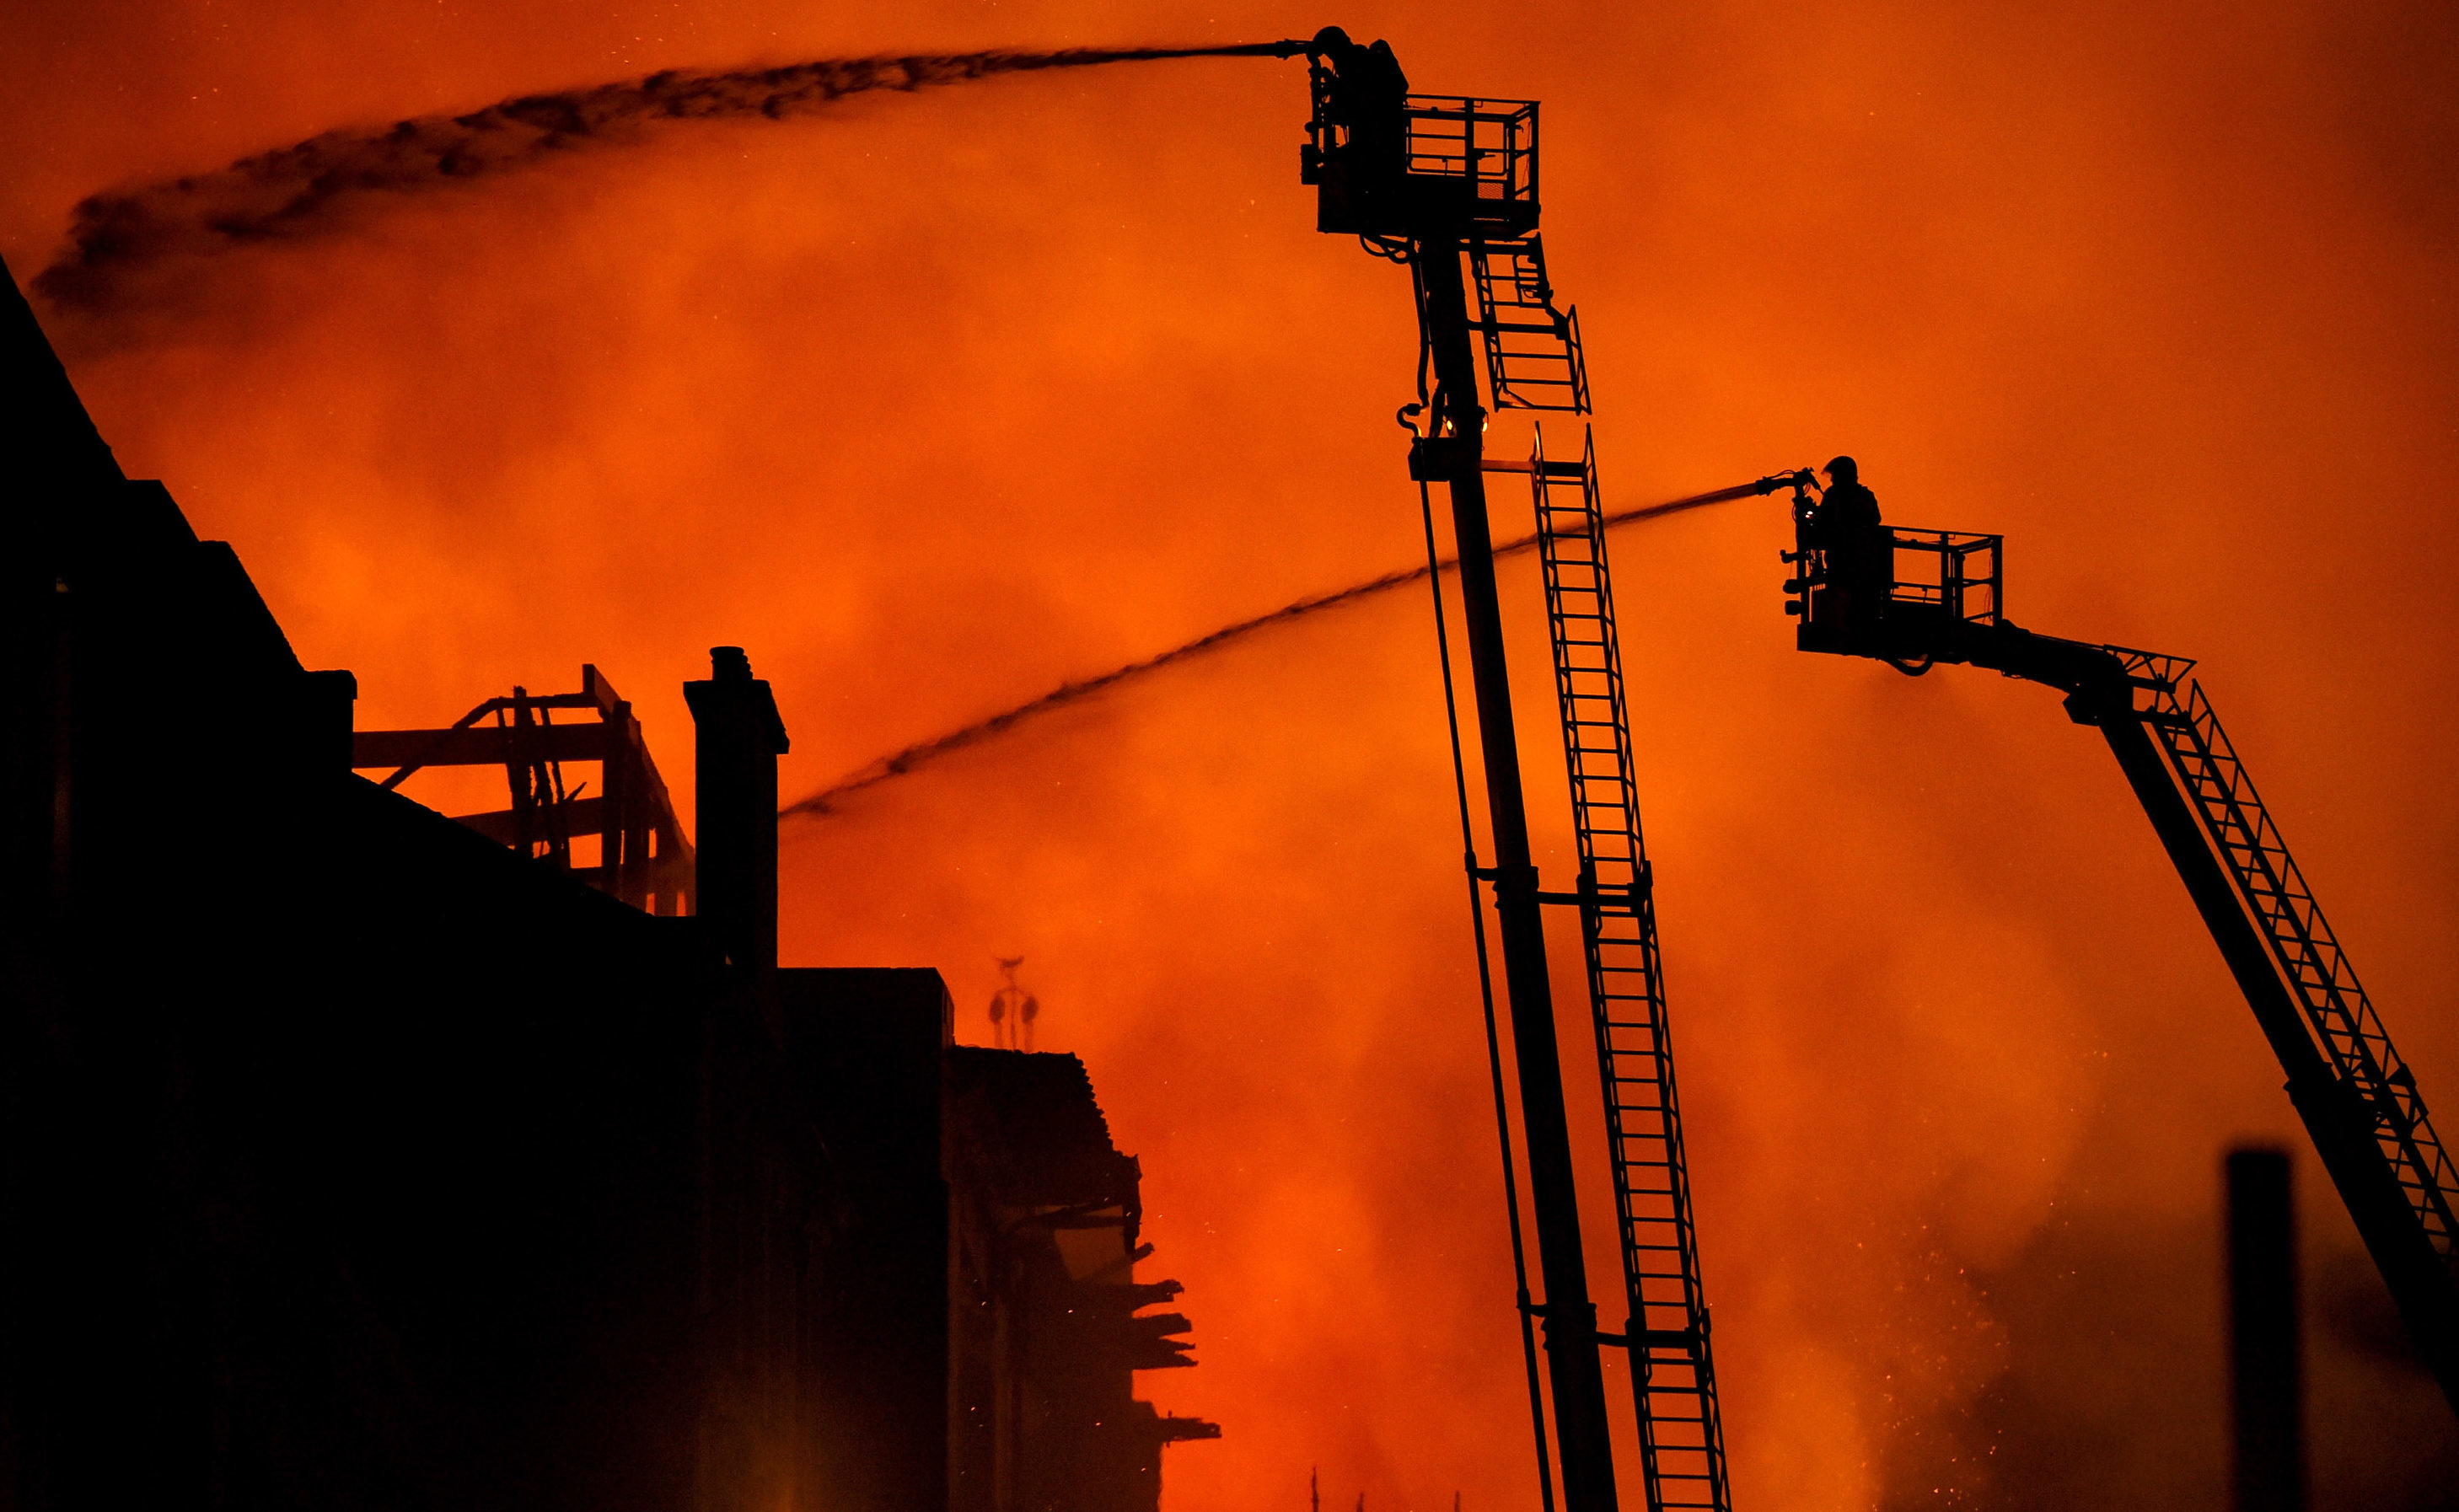 Fire fighters battle a blaze at the Mackintosh Building.